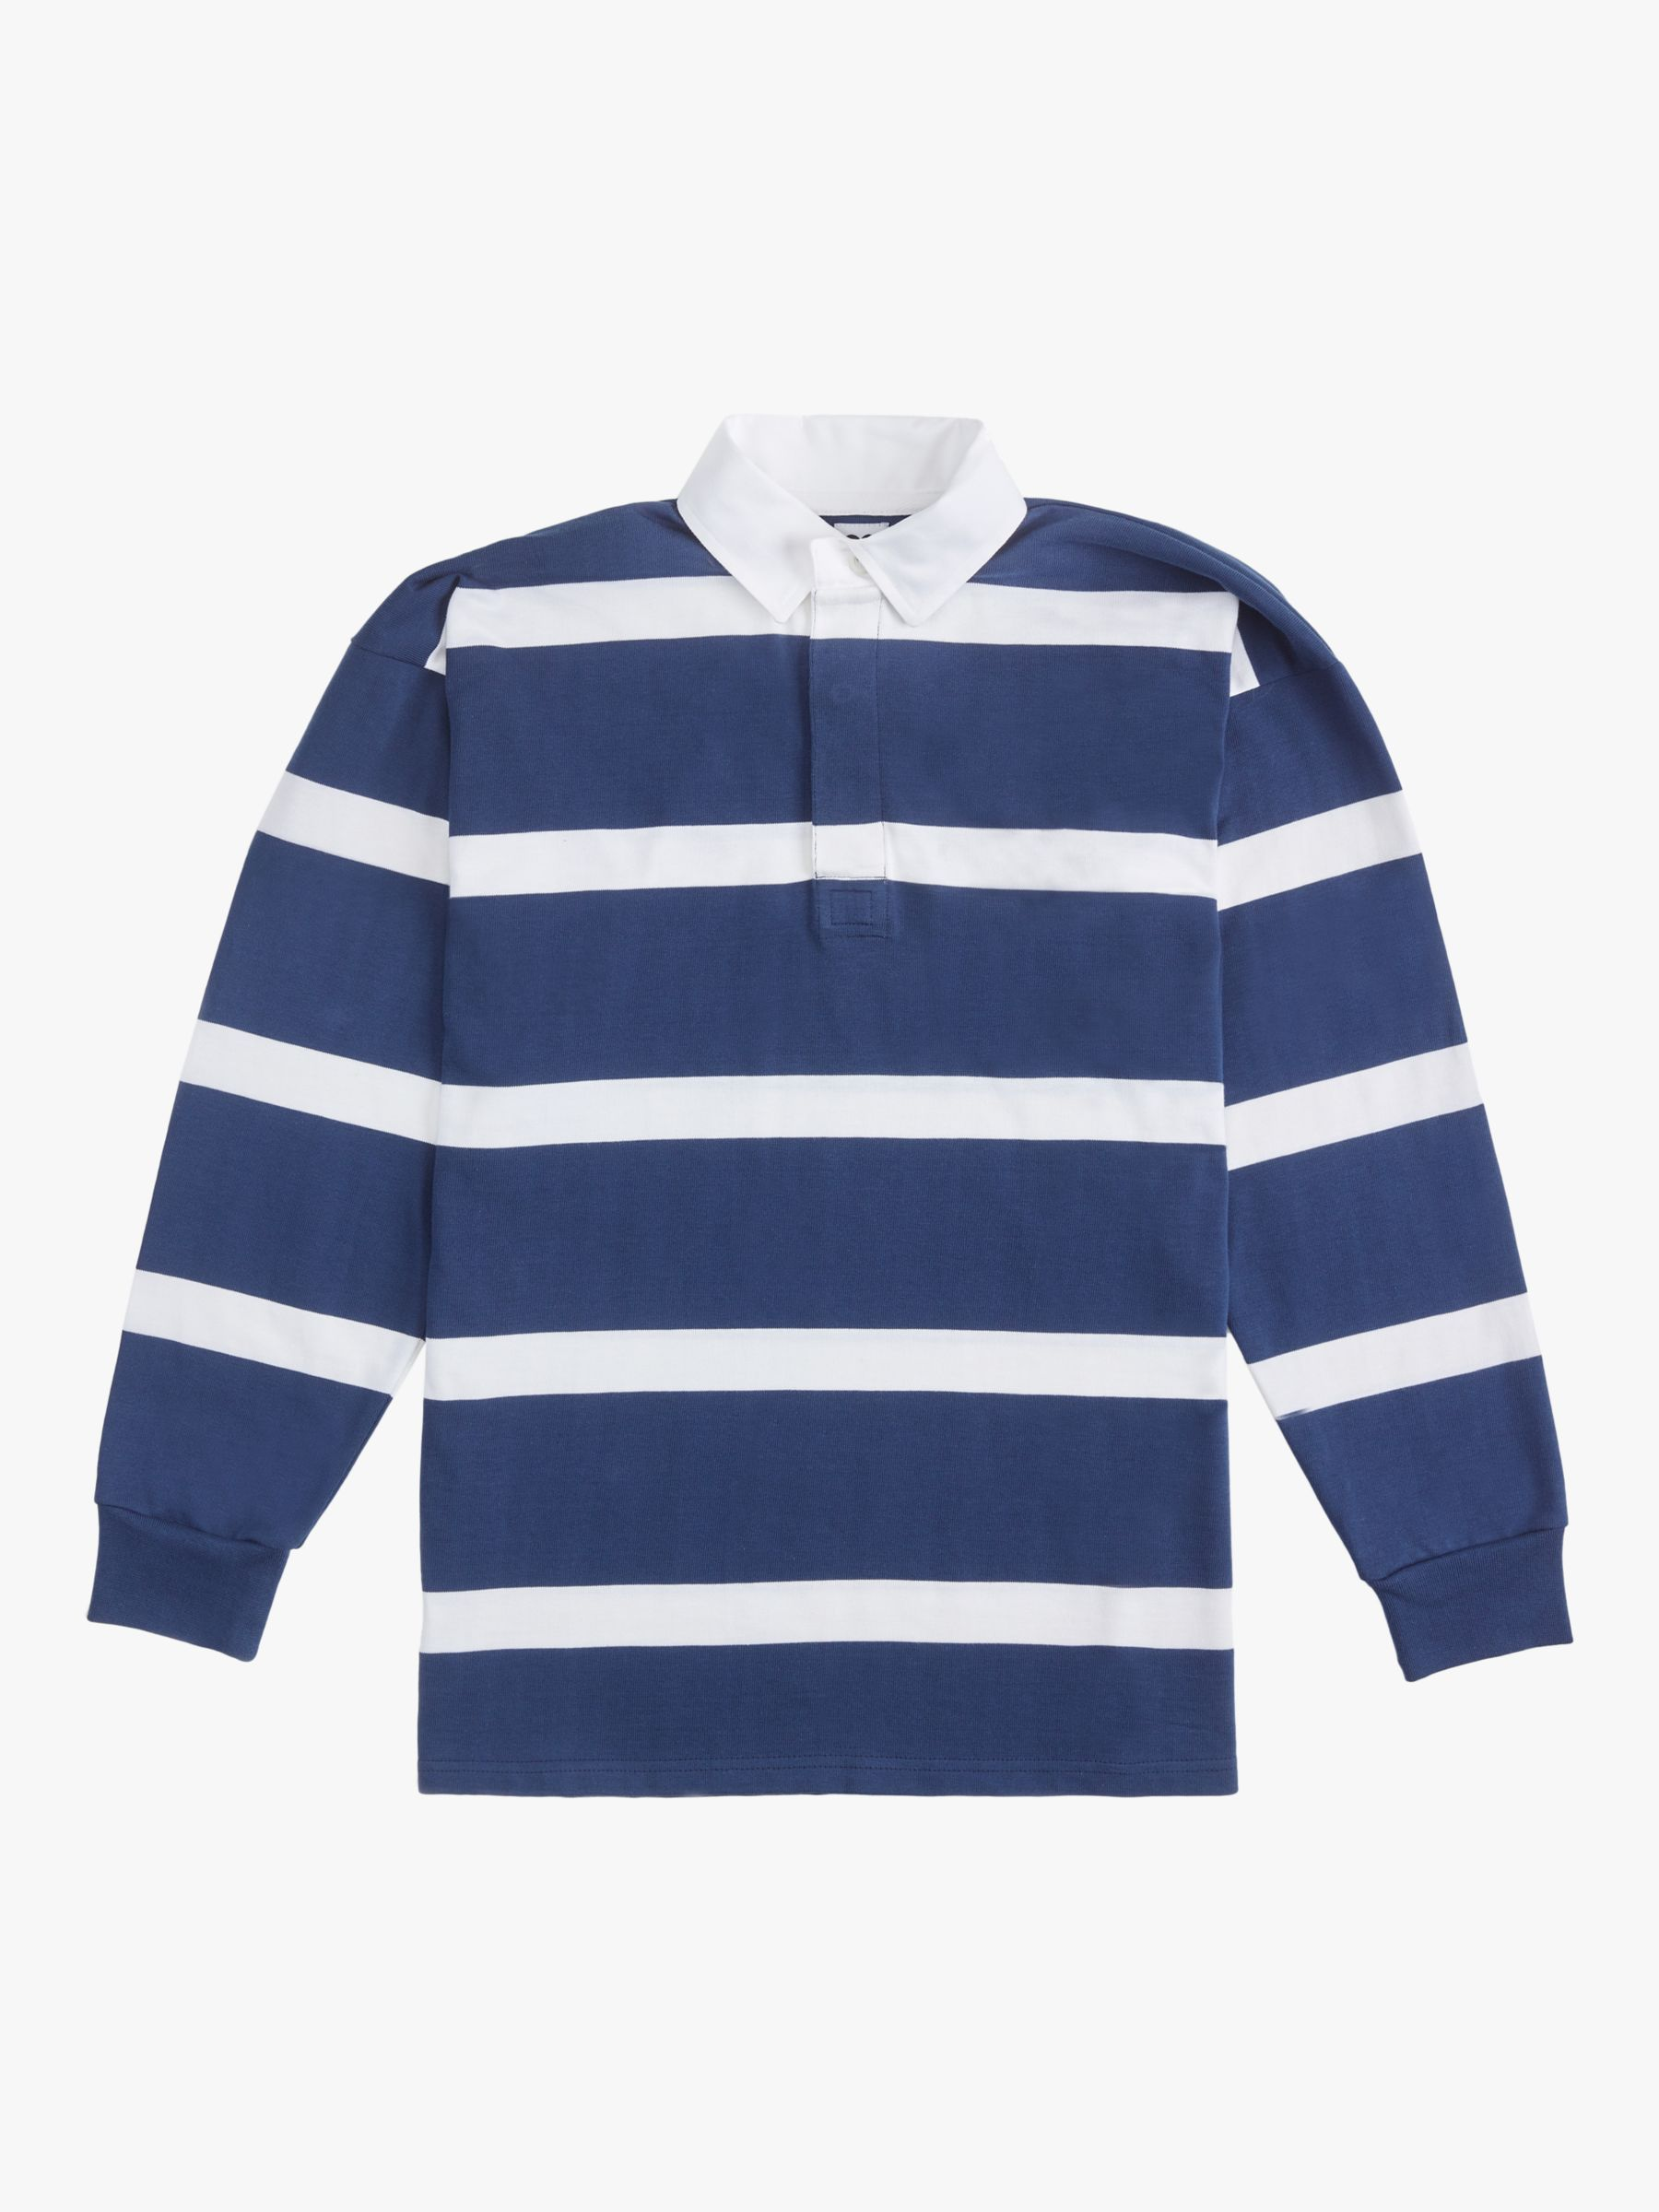 Community Clothing Stripe Rugby Shirt, Navy/White Stripe